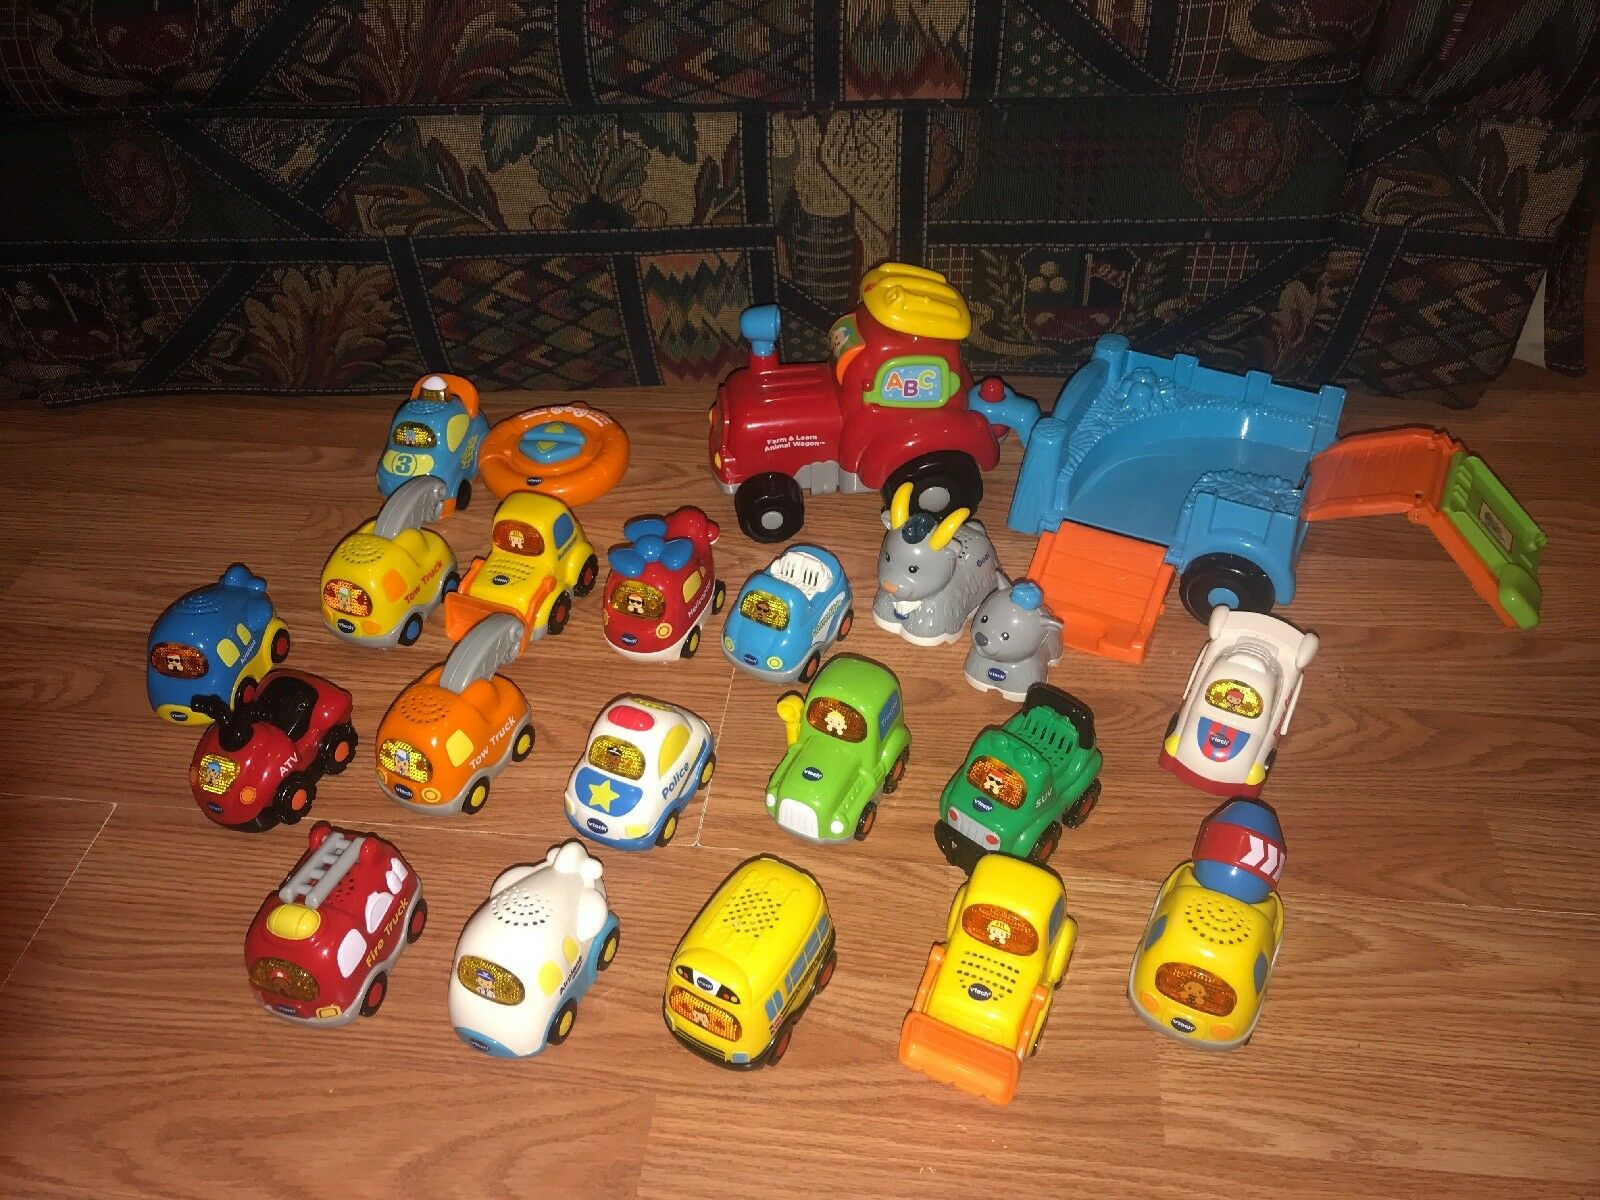 22  PIECE HUGE LOT OF VTECH GO GO SMART ANIMALS & CARS WHEELS VEHICLES